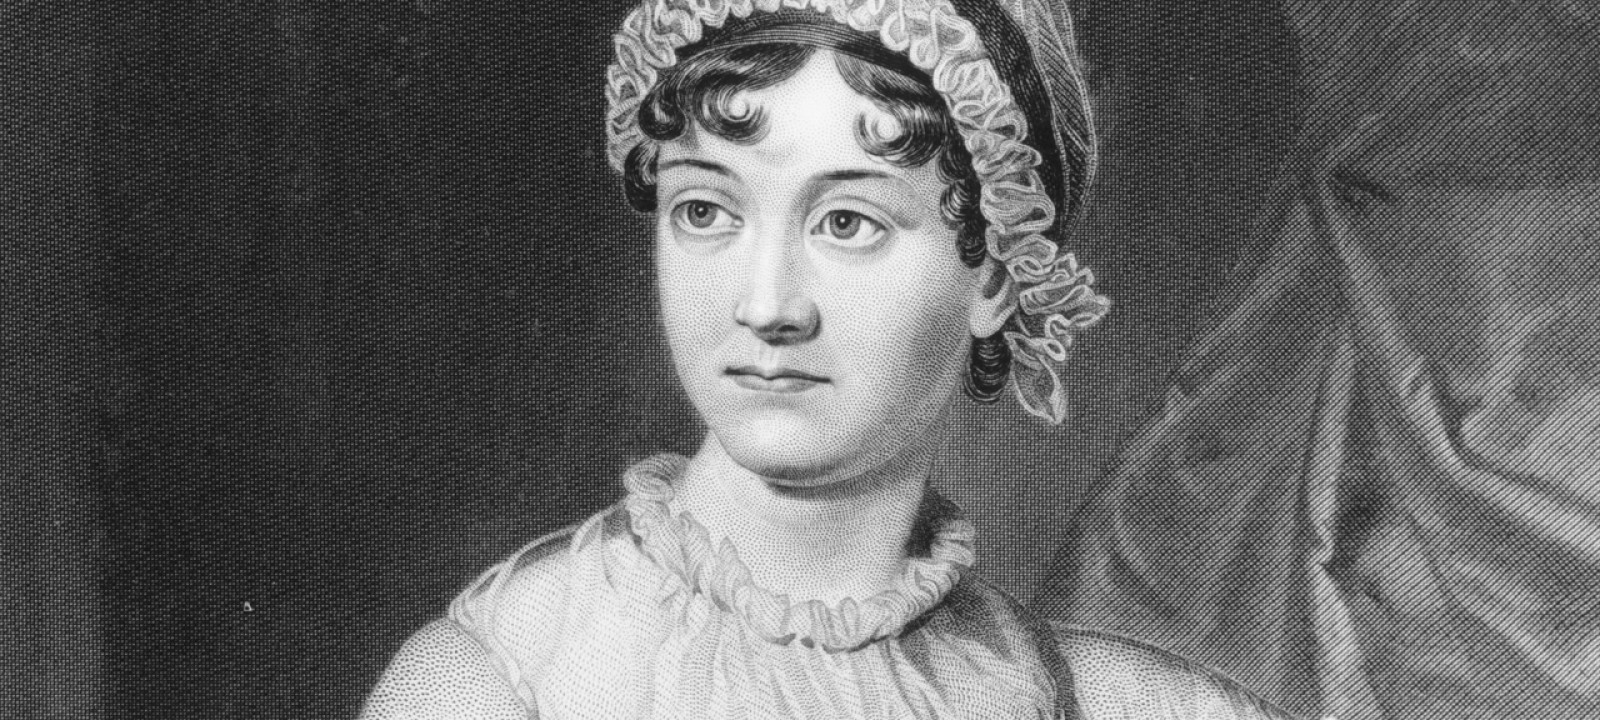 Jane Austen (Photo: Hulton Archive/Getty Images)